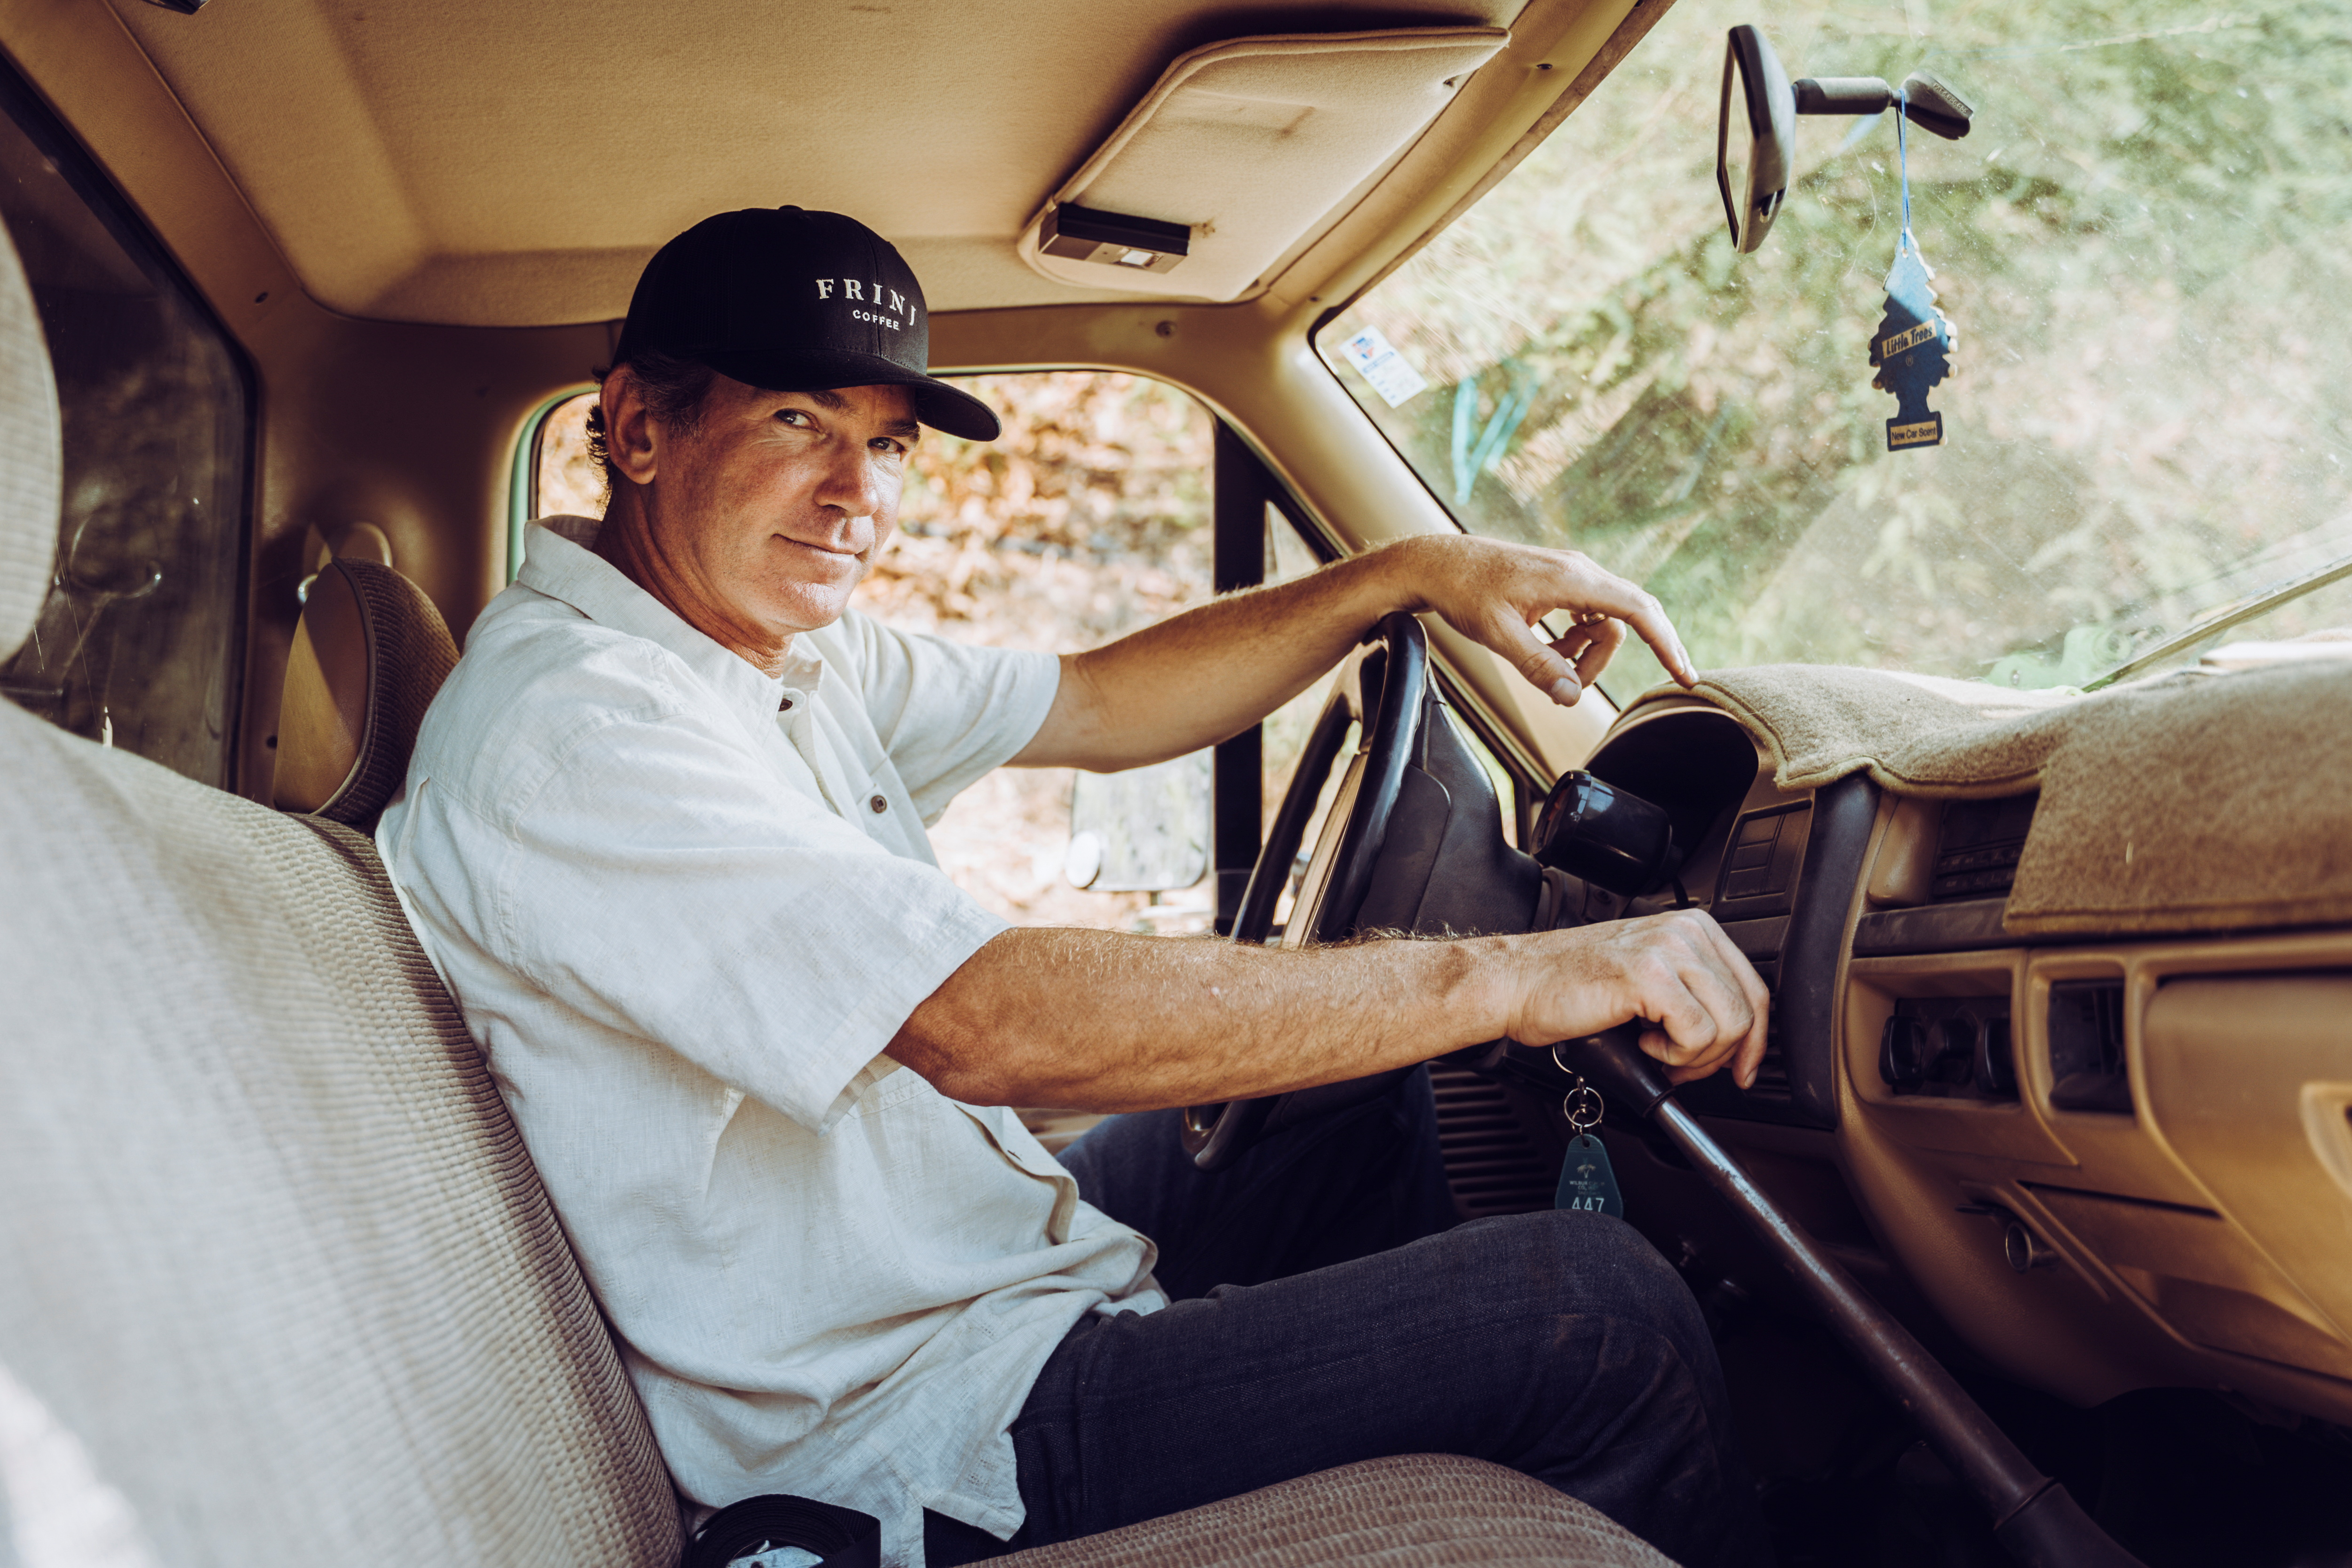 Farmer Jay Ruskey, the Chief Executive of FRINJ Coffee, drives his truck around his farm in California, where he planted coffee trees, U.S., in this picture obtained by Reuters on September 20, 2021. FRINJ Coffee/Handout via REUTER